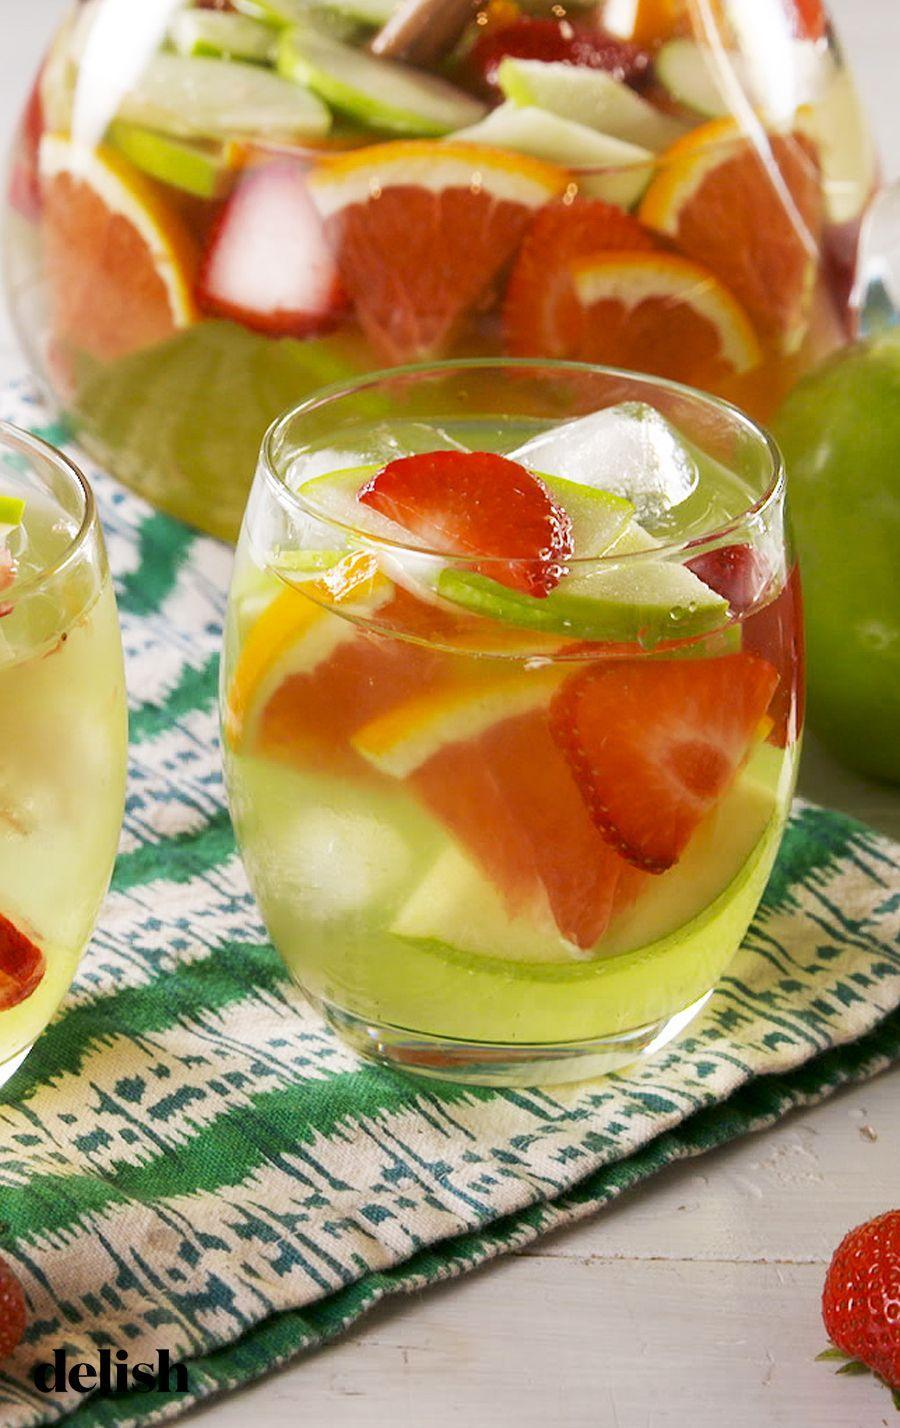 """<p>Olive Garden fans, this tastes just like the drink you know and love.</p><p>Get the recipe from <a href=""""https://www.delish.com/cooking/recipe-ideas/a28691436/green-apple-moscato-sangria-recipe/"""" rel=""""nofollow noopener"""" target=""""_blank"""" data-ylk=""""slk:Delish"""" class=""""link rapid-noclick-resp"""">Delish</a>.<br></p>"""